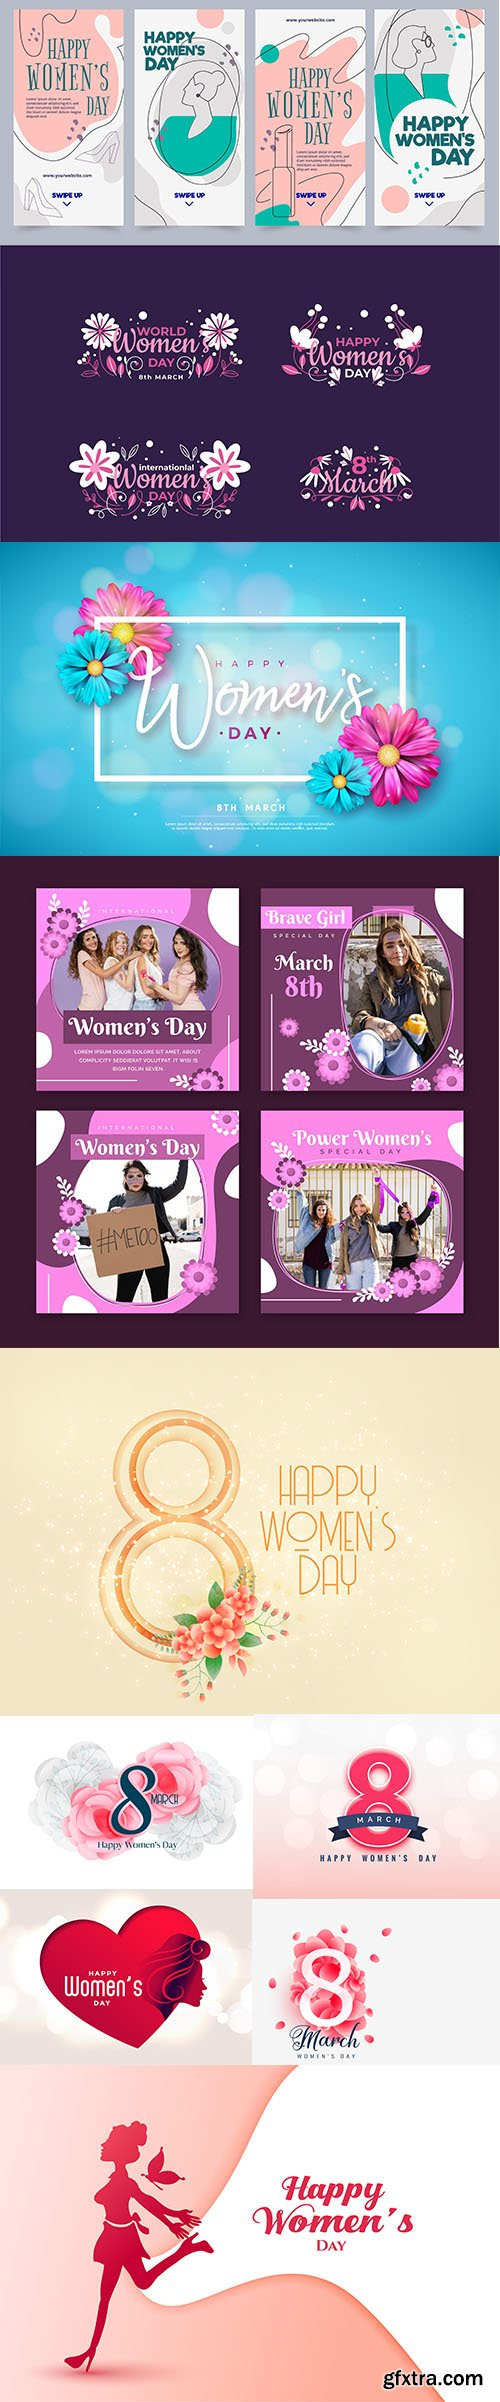 8 march happy womens day vector collection